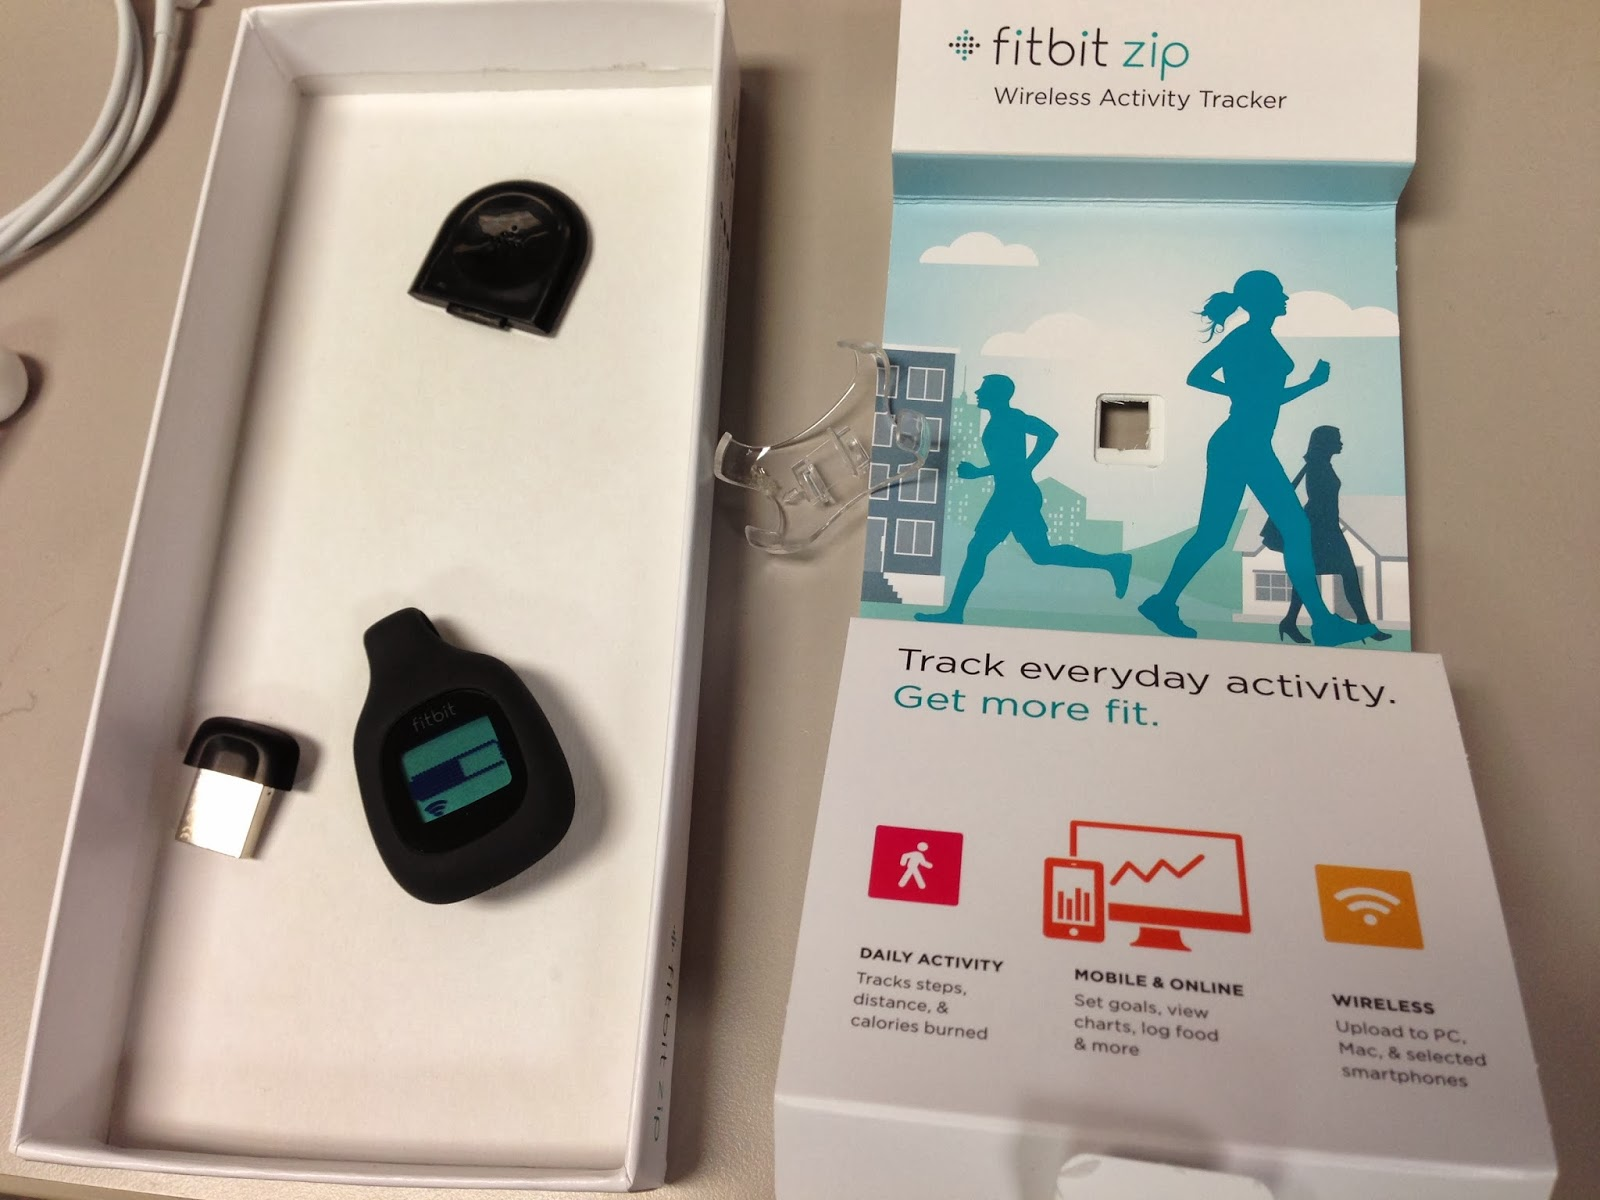 fitbit zip setup instructions